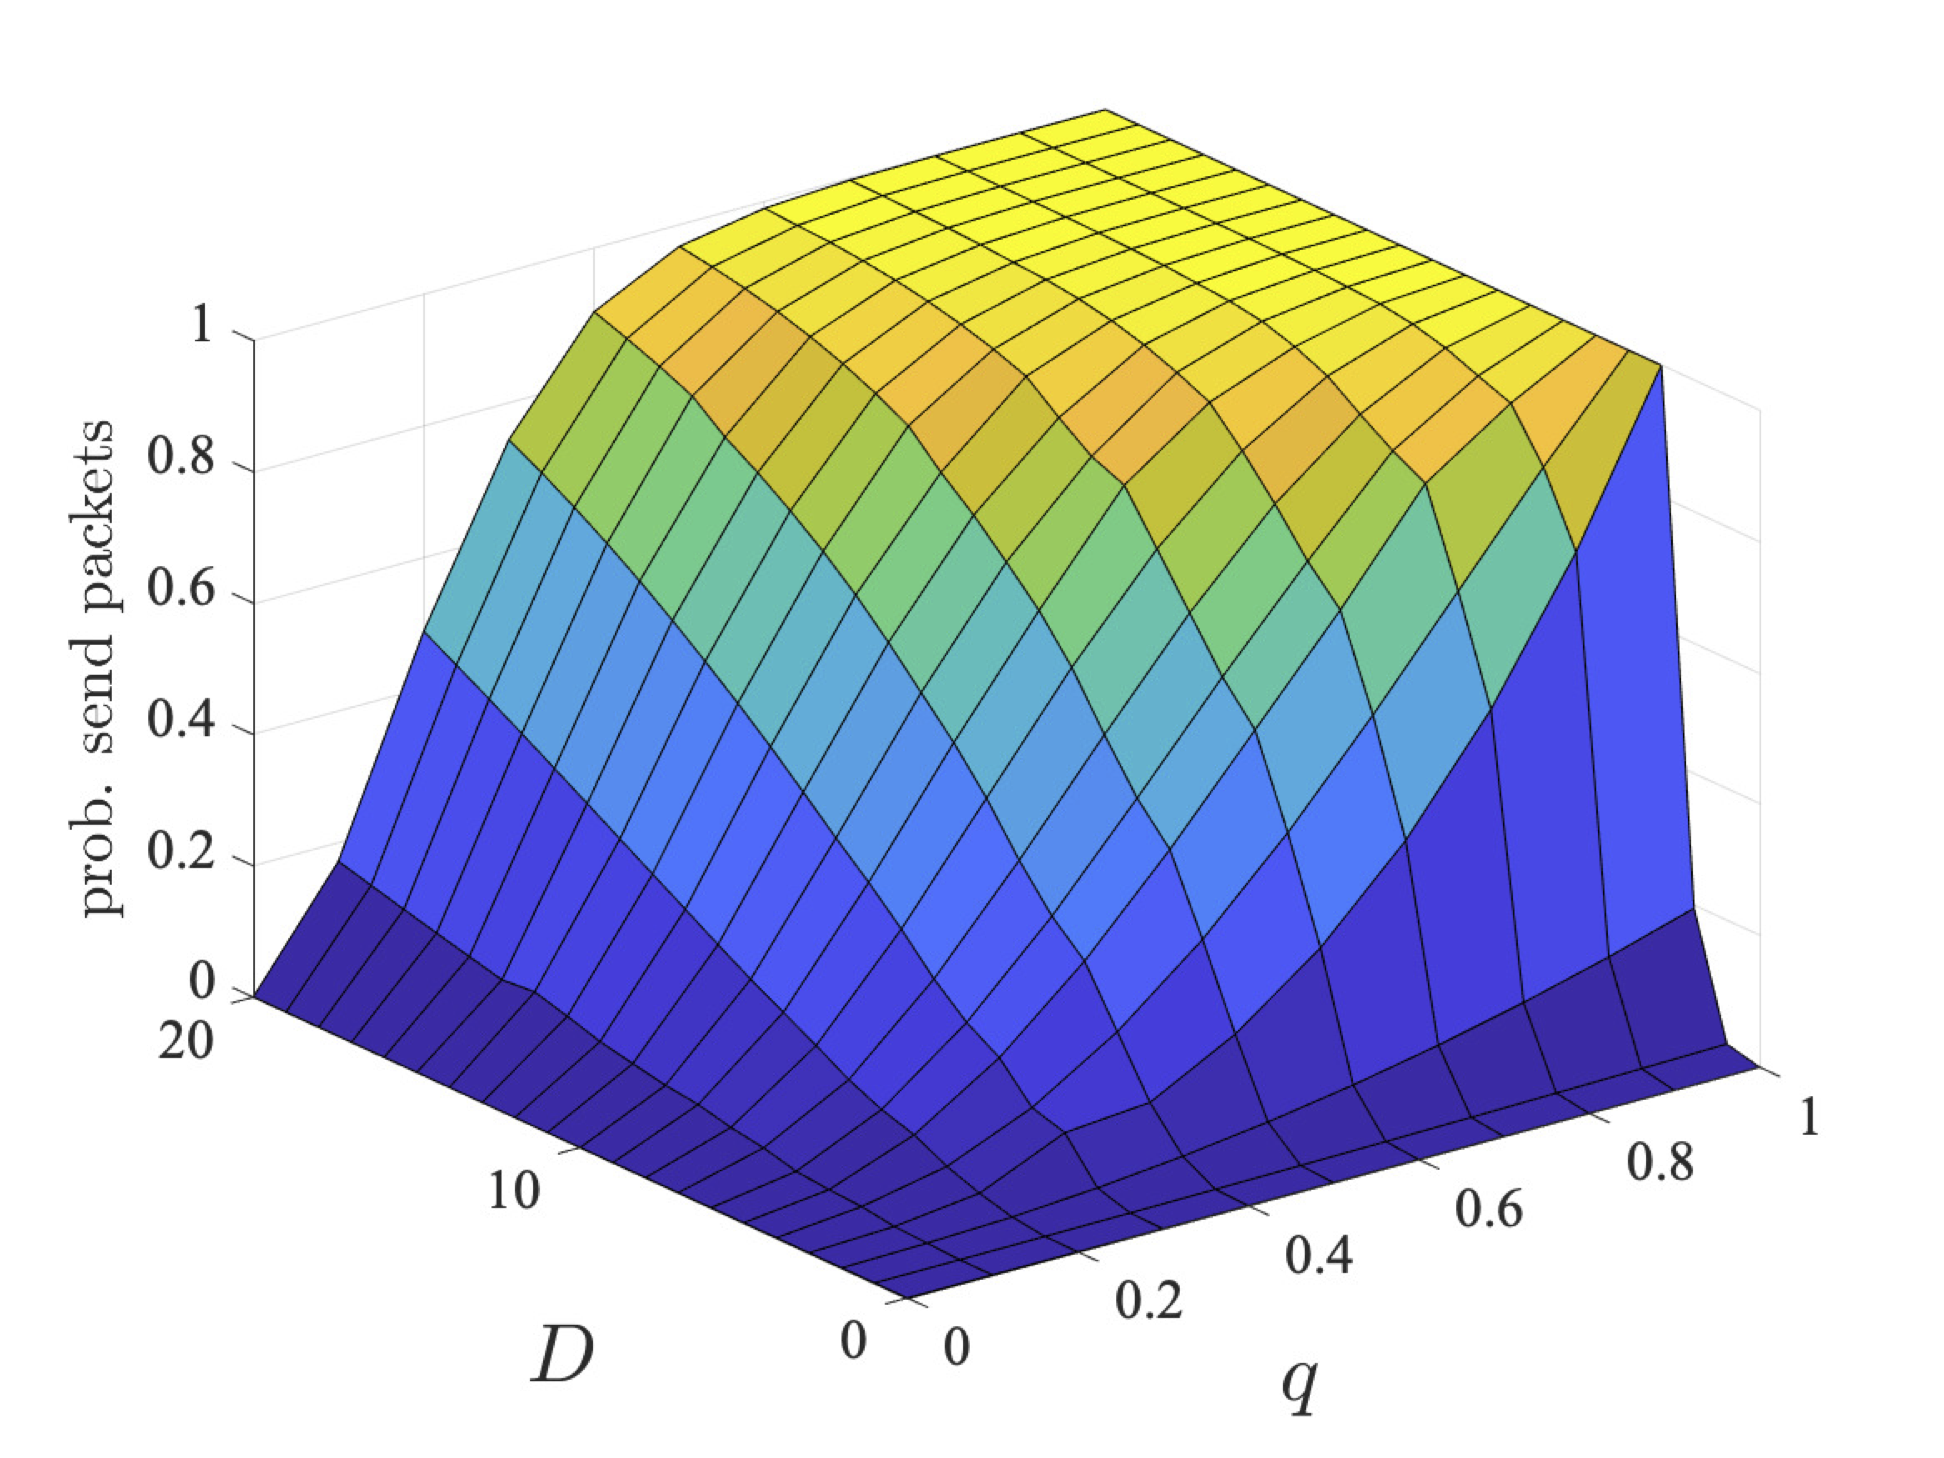 plot: maximum probability users 2 and 3 send their packets within a deadline (bcmax=2)